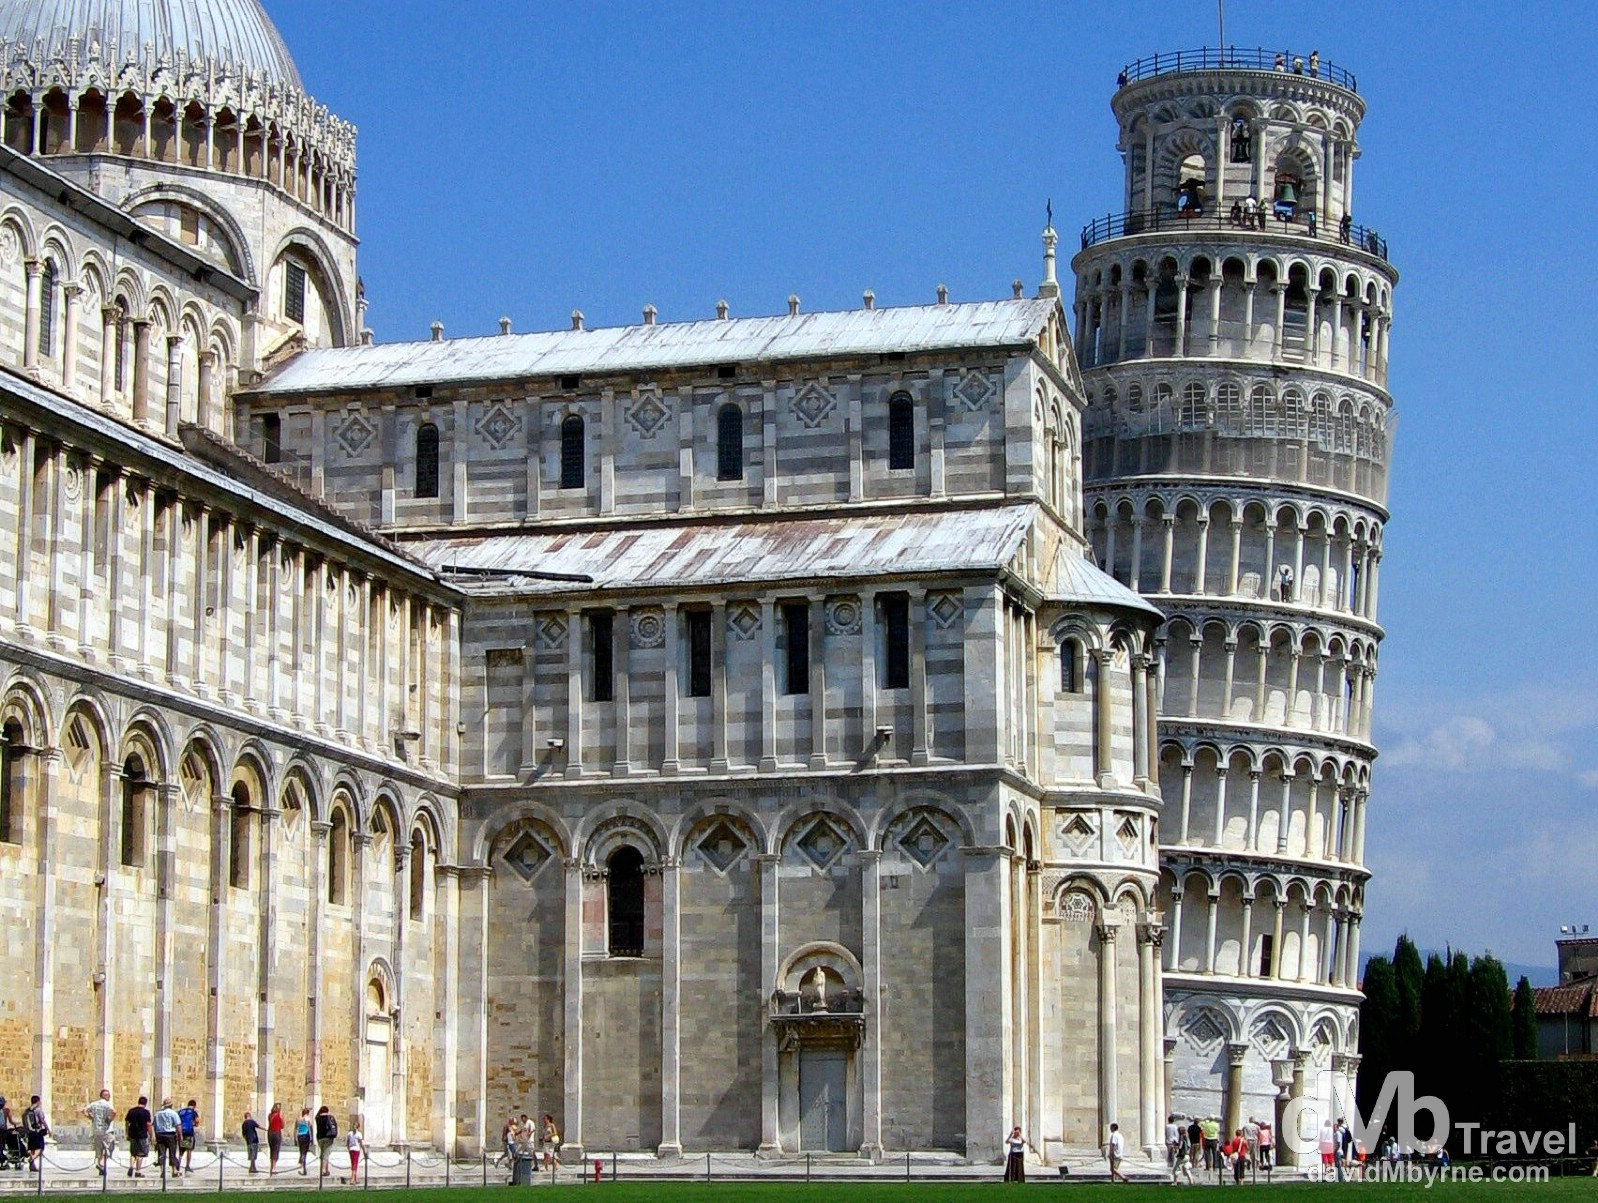 A section of the Cathedral & the leaning tower in the Campo dei Miracoli (Field of Miracles) in Pisa, Tuscany, Italy. August 31st 2007.